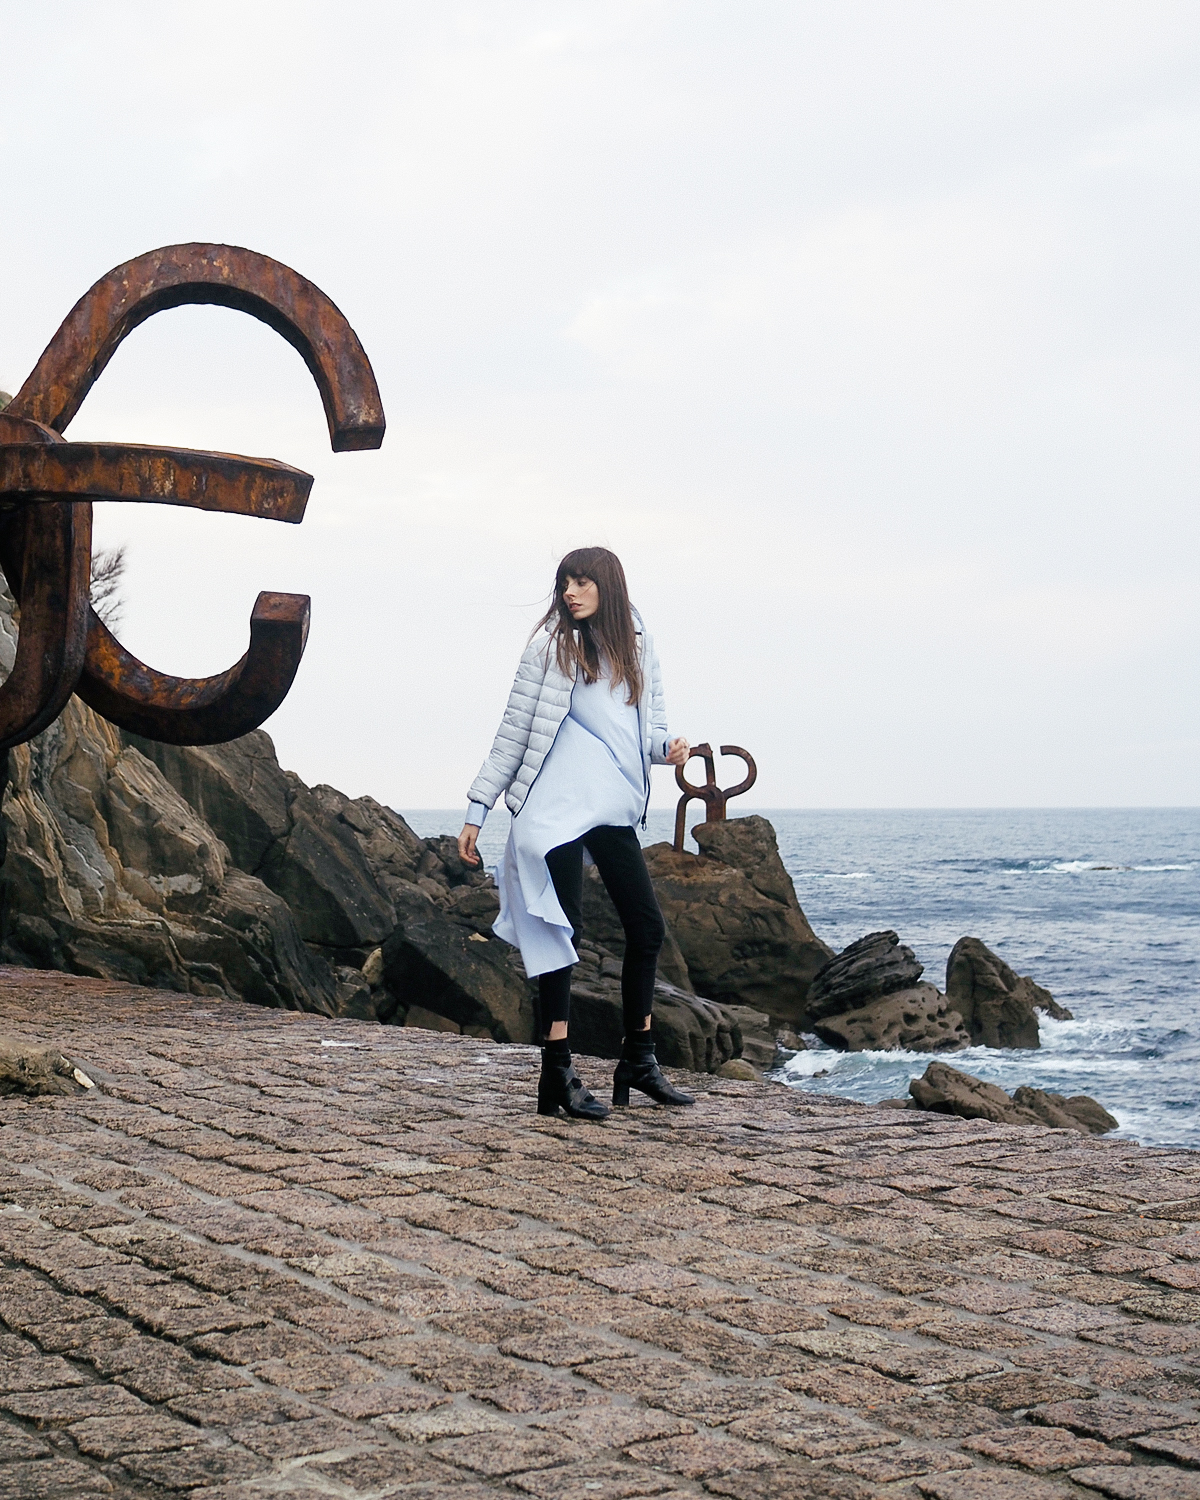 CHILLIDA-PEINE-DONOSTI-NORTH-SAILS-ANNA-PONSA-19